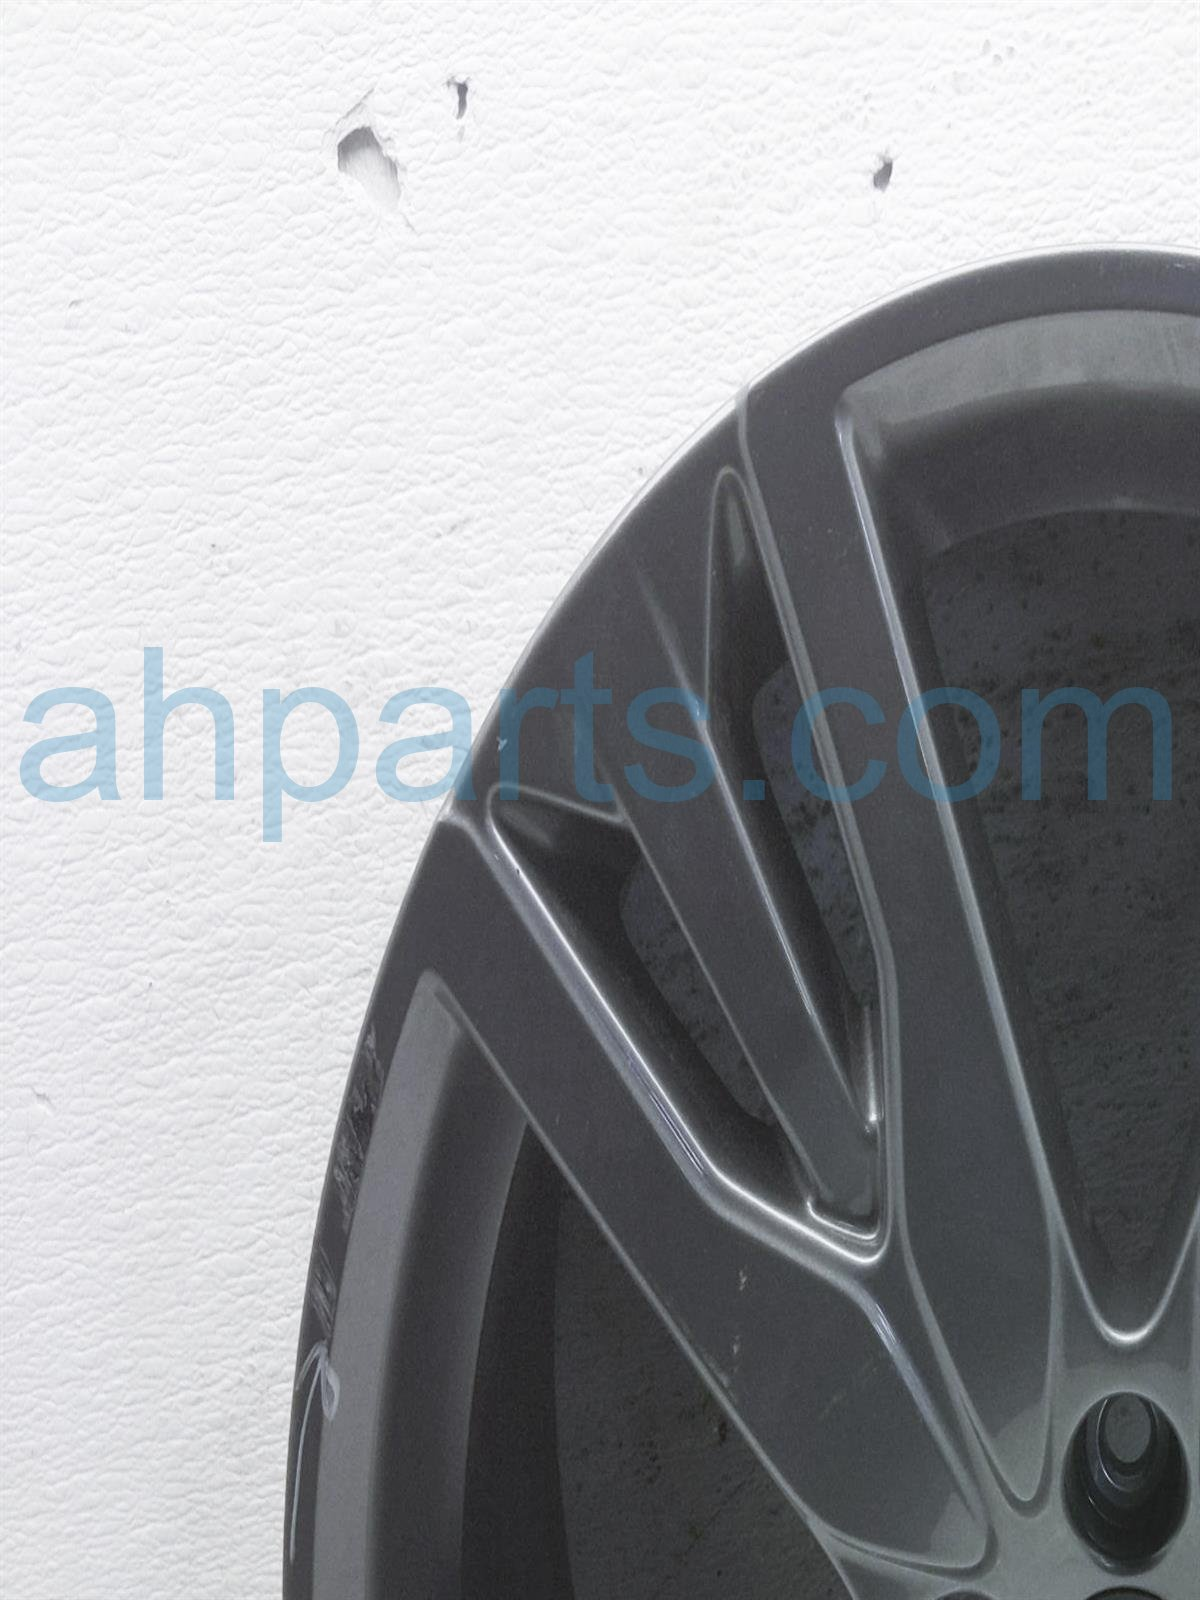 2019 Honda Passport Rear Passenger Wheel/rim   Tiny Scuff 08W20 TG7 101A Replacement